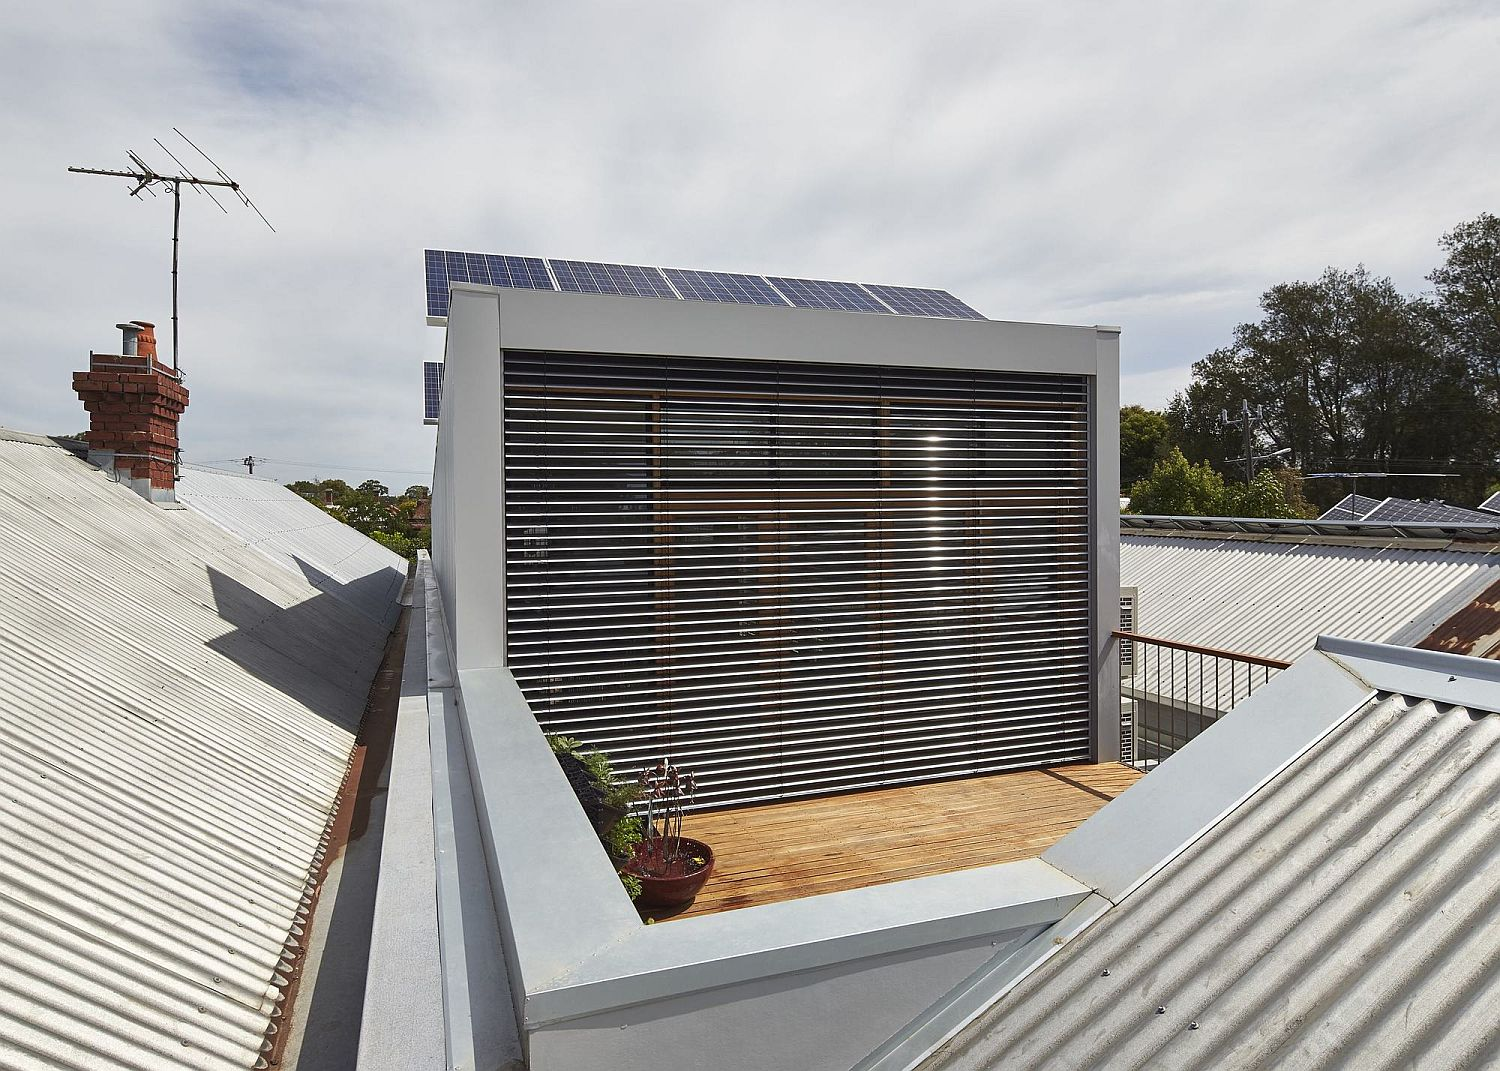 Solar panels on the home brings sustainable energy to the house